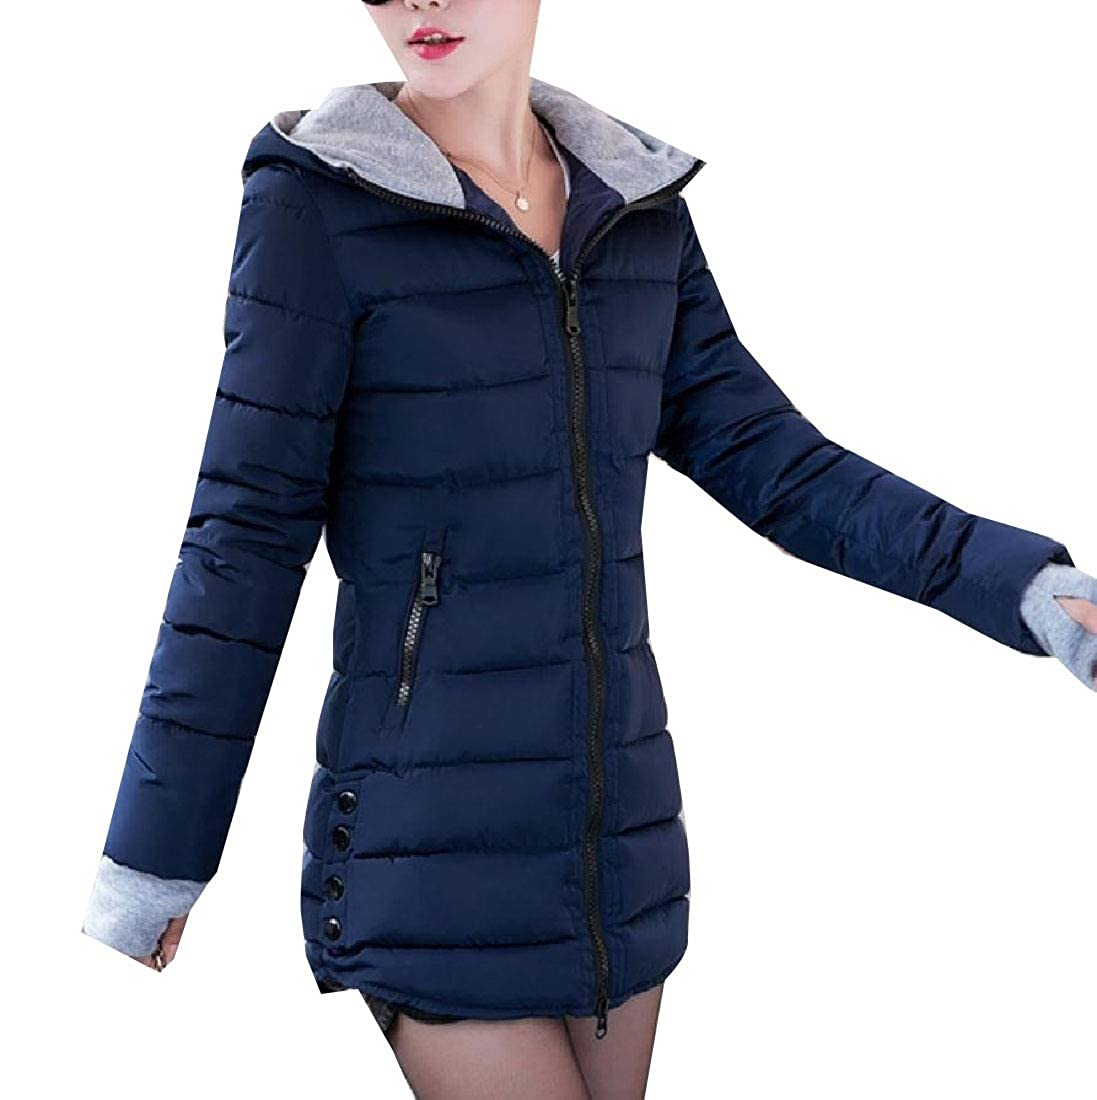 YUNY Women Hooded Overcoat Cotton-Padded Clothes Hit Color Down Parka Purplish Blue 3XL